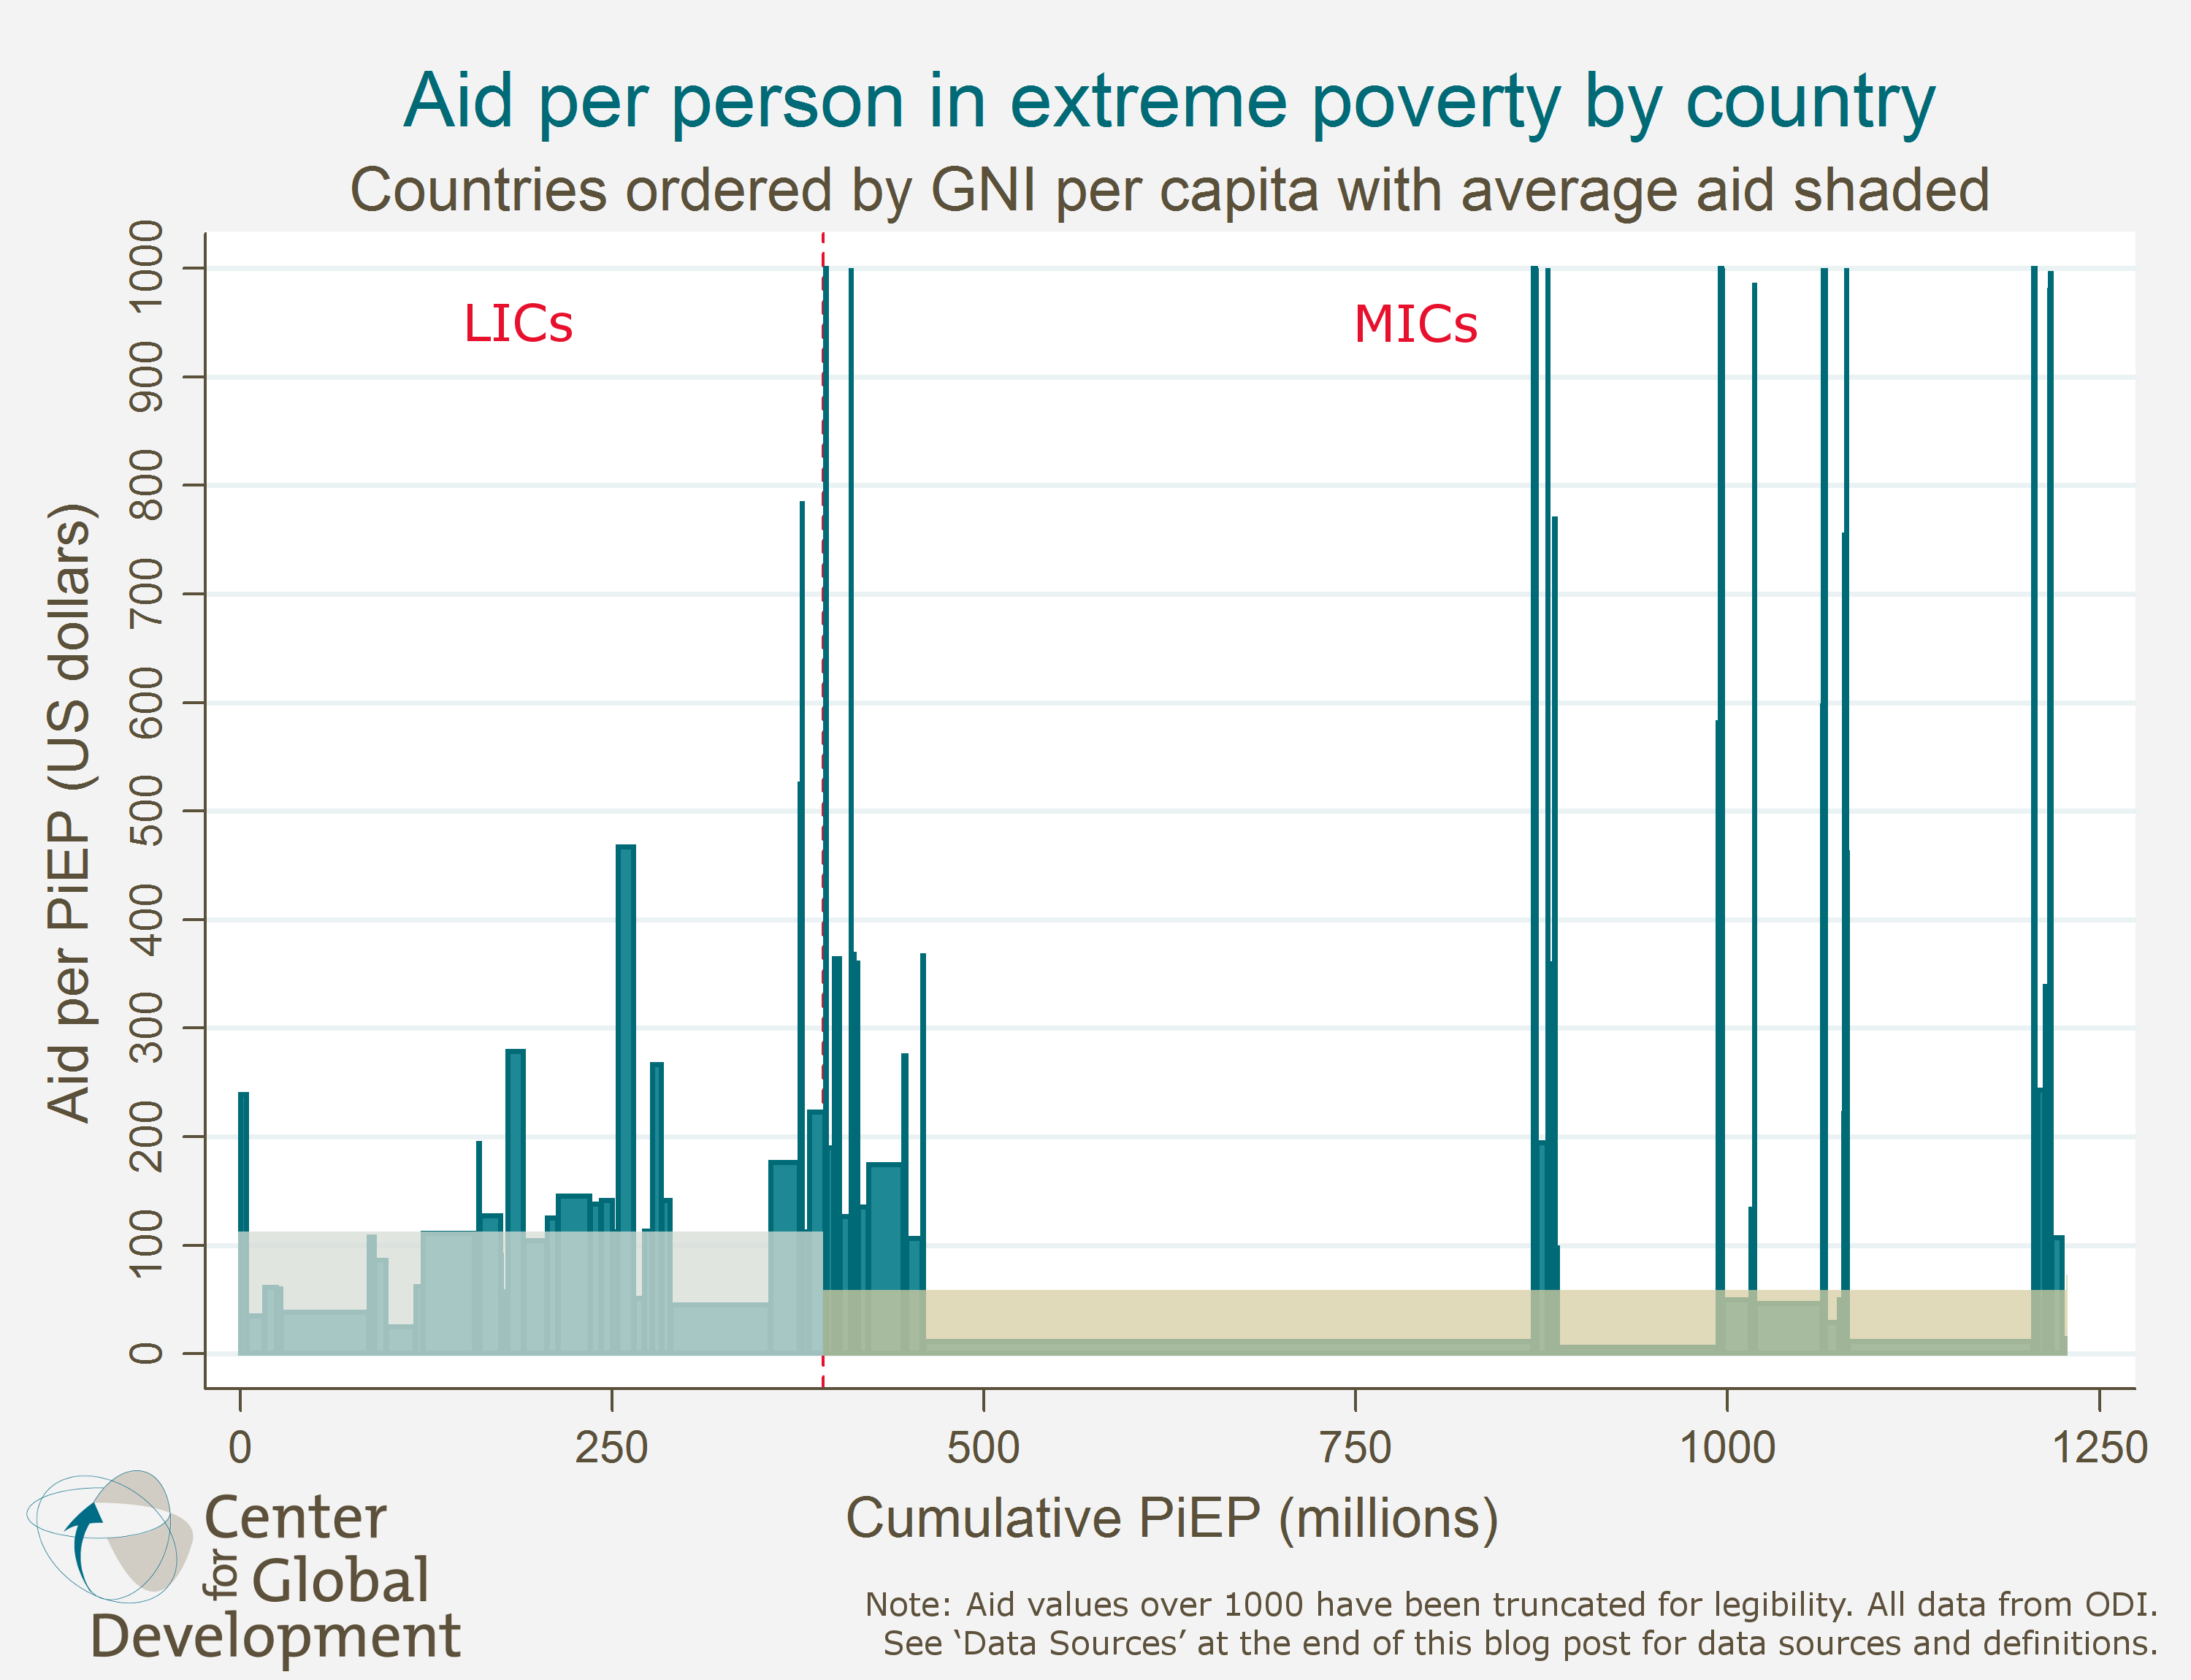 Do MiddleIncome Countries Get More Aid Than LowIncome Countries - Poverty per country